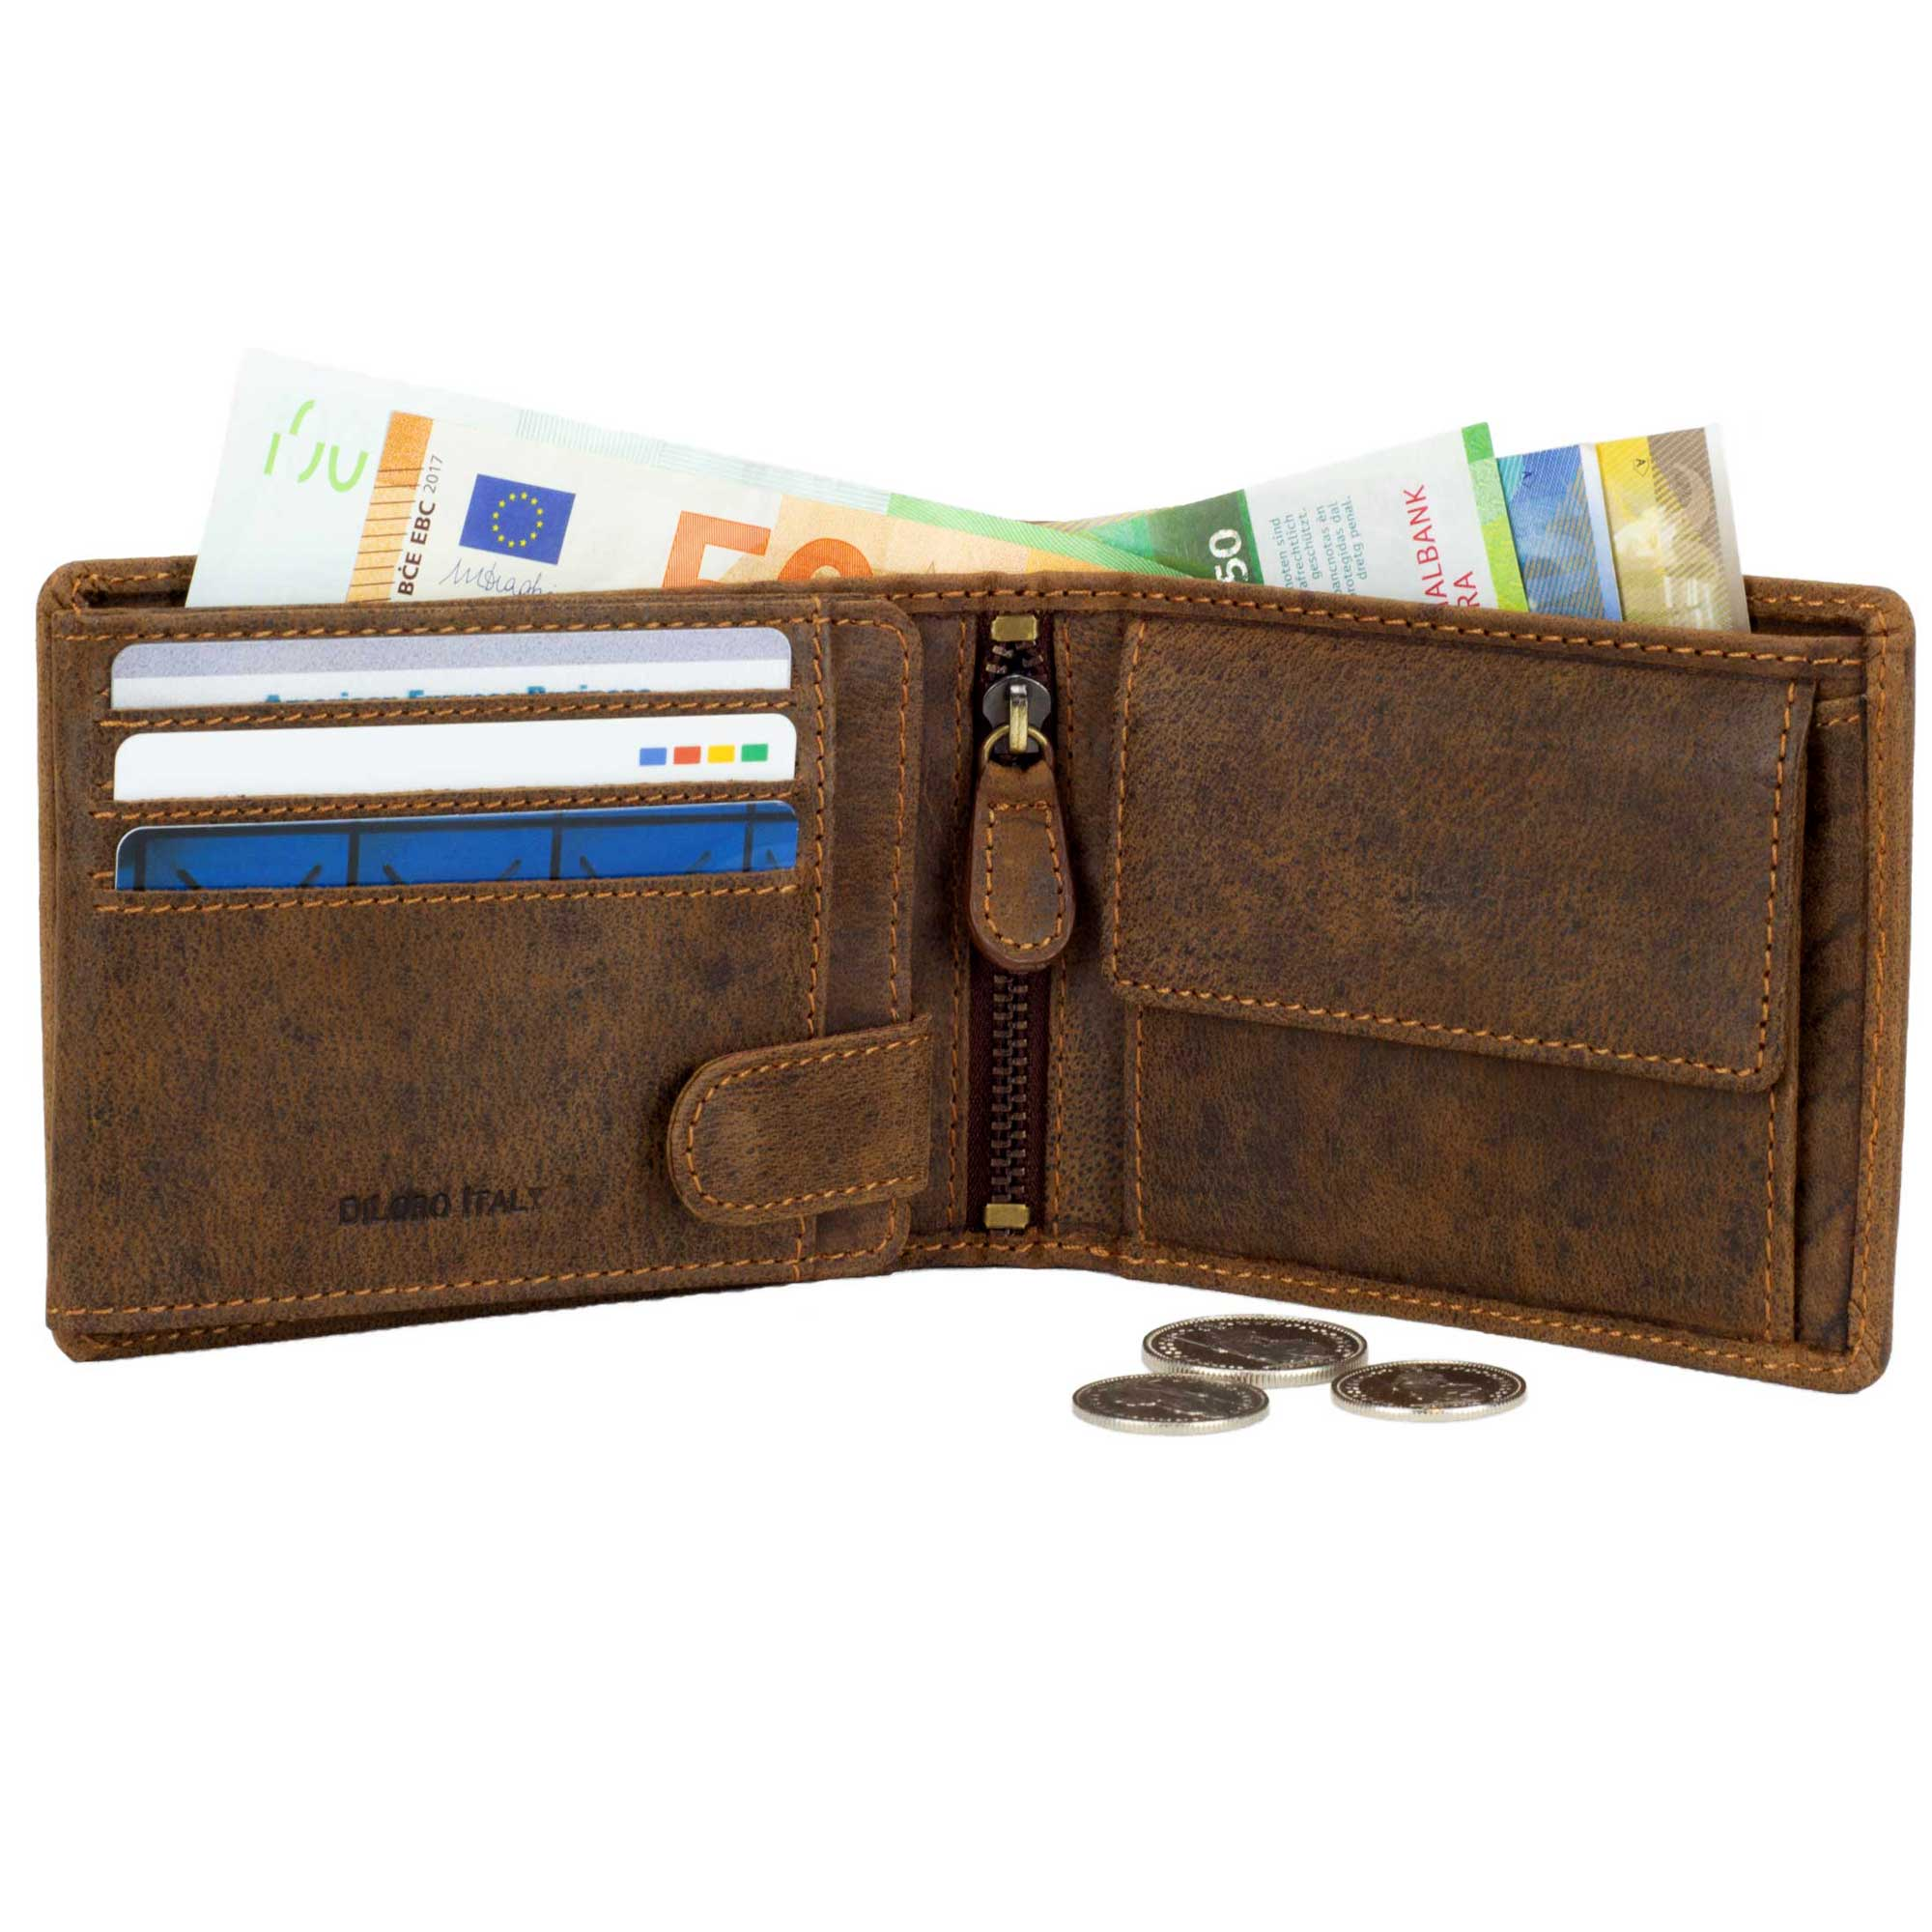 DiLoro Men's Leather Bifold Flip ID Zip Coin Wallet with RFID Protection - Dark Hunter Brown